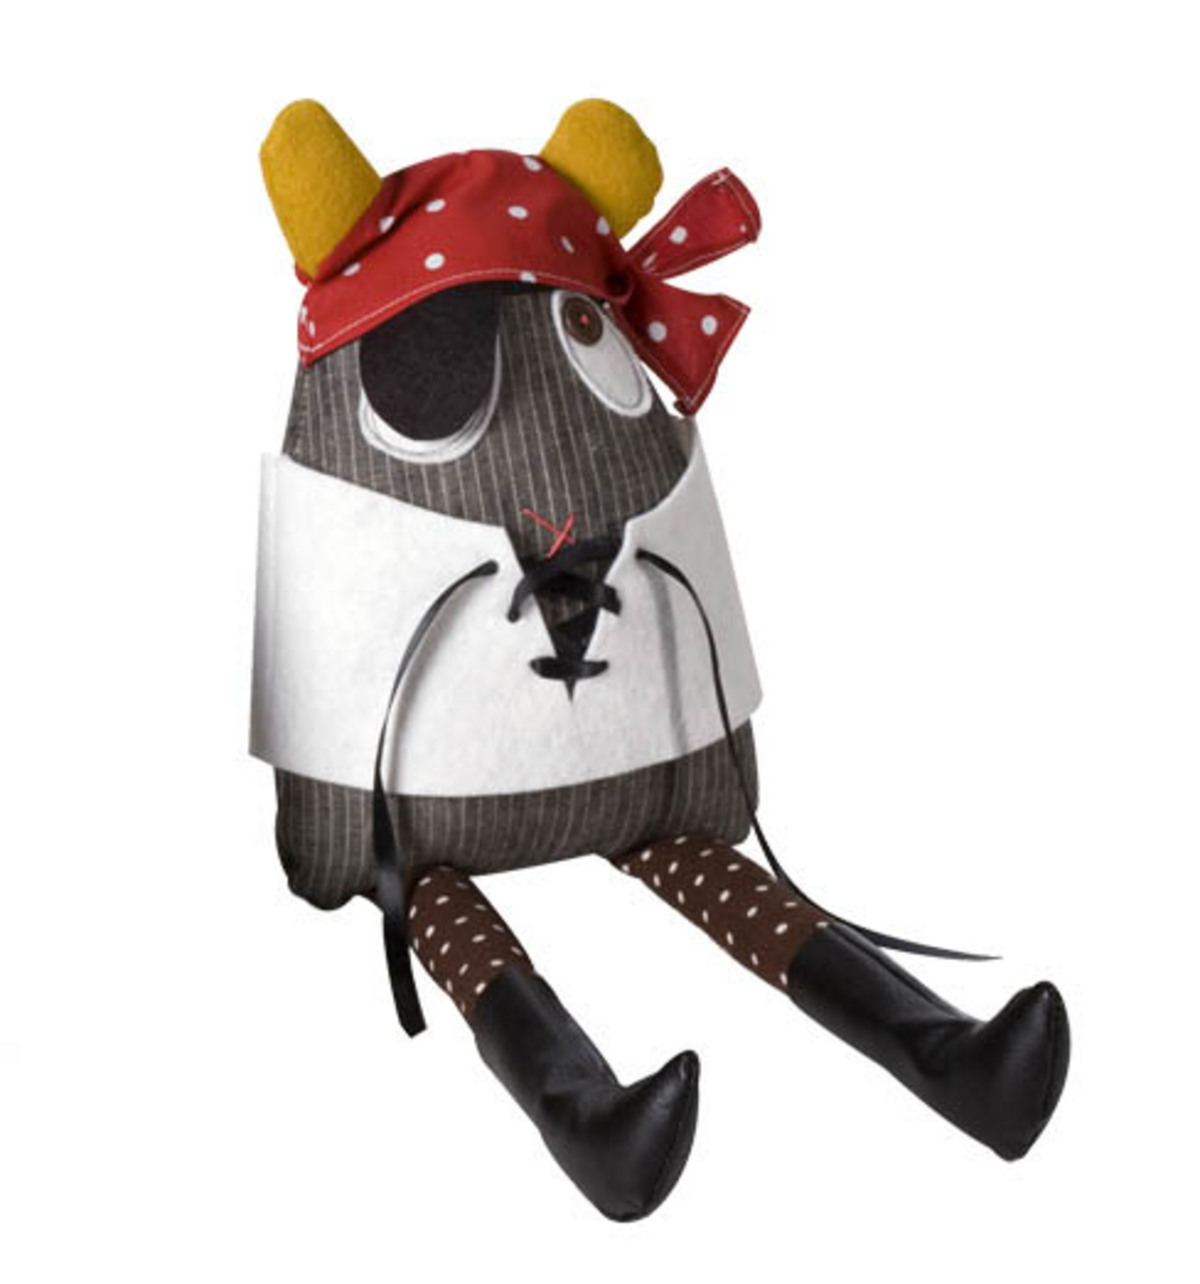 Pirate Costume for Monster Doll